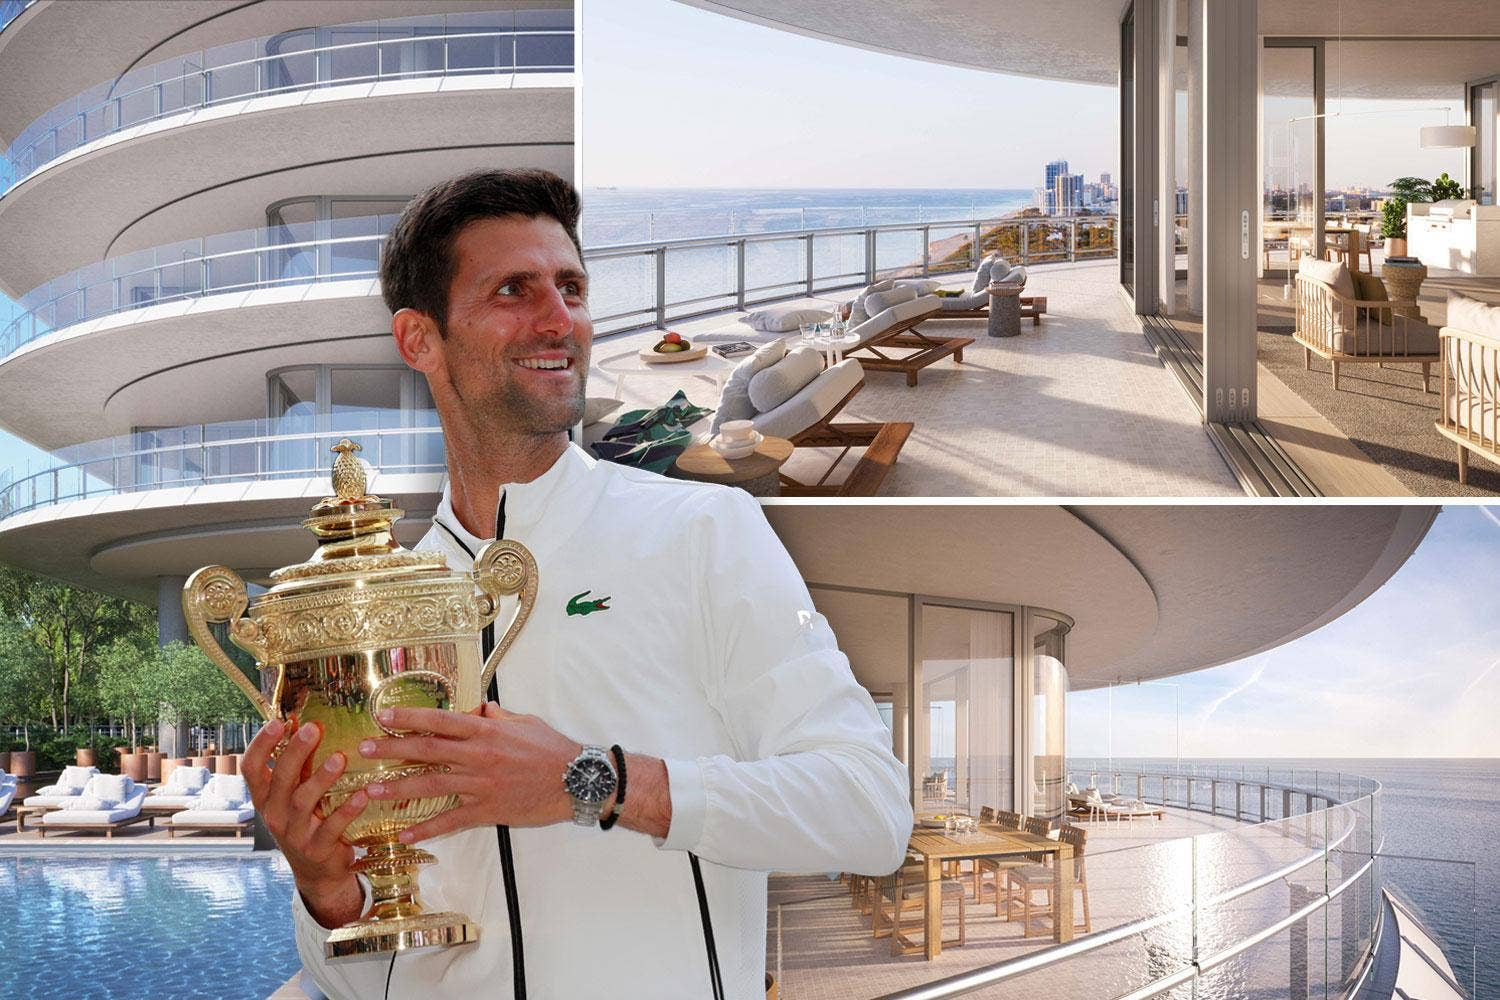 Novak Djokovic's $6M for Piano-designed condo